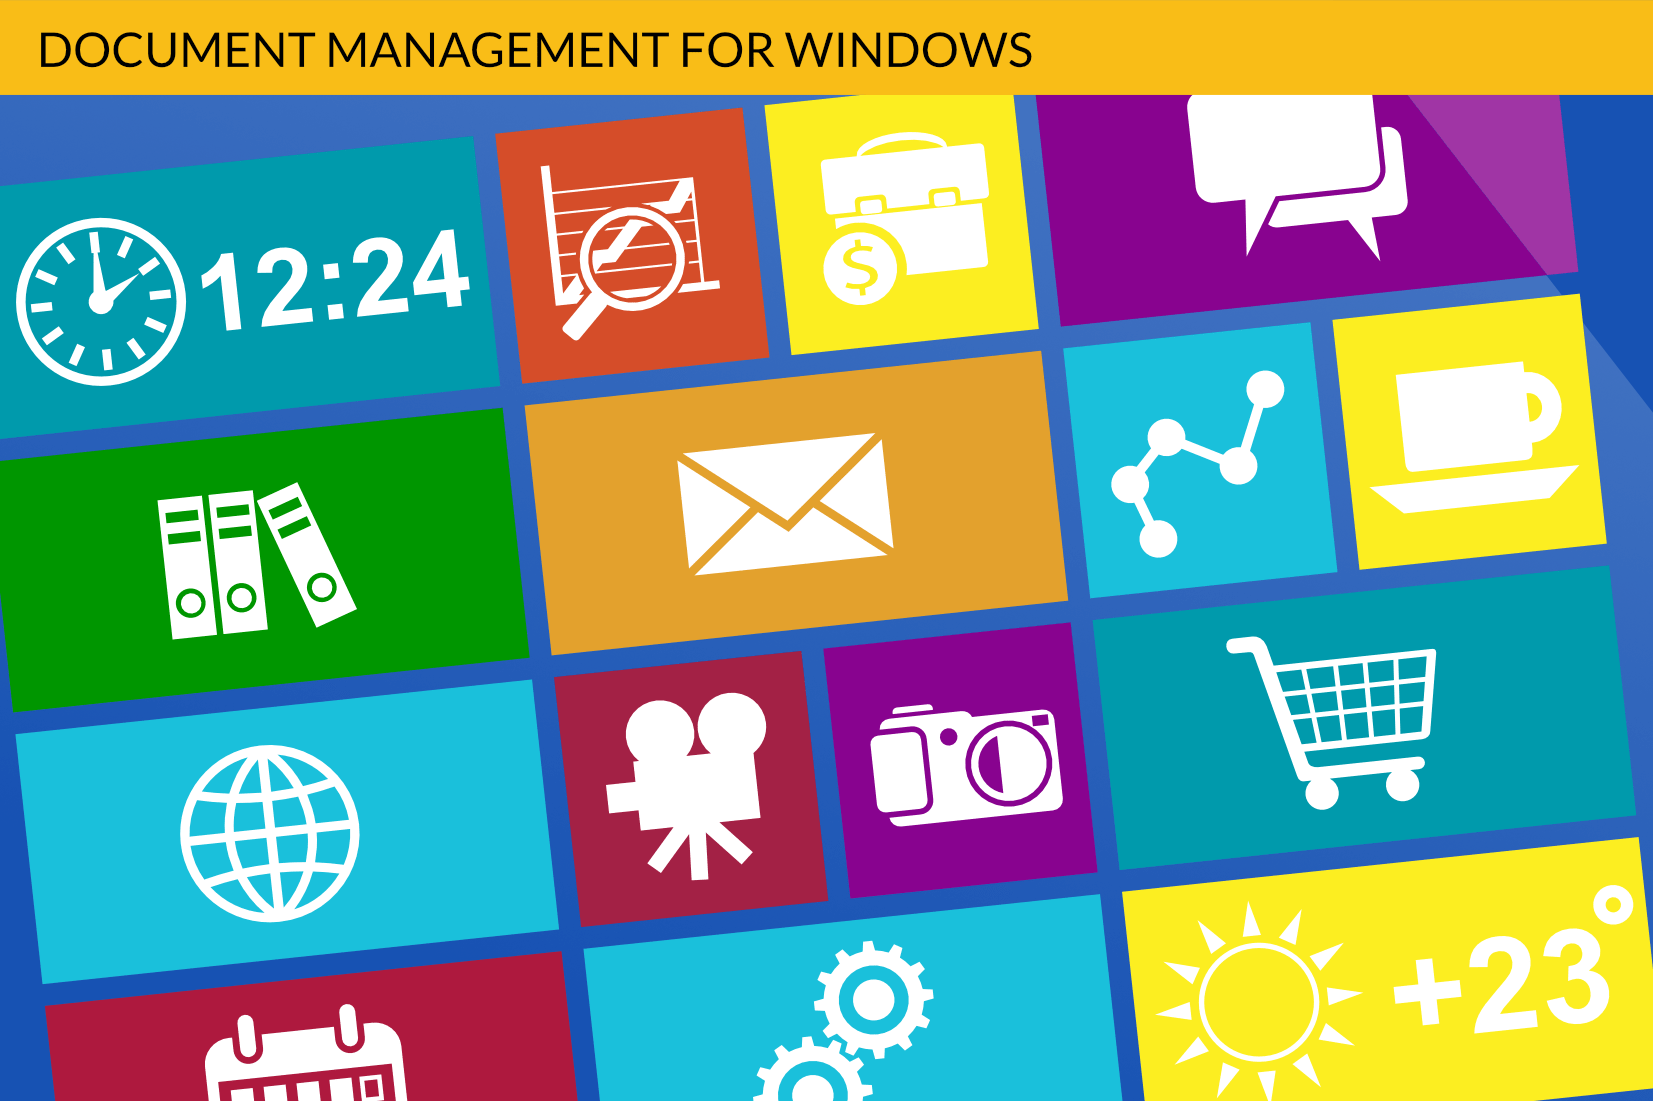 Document management for Windows